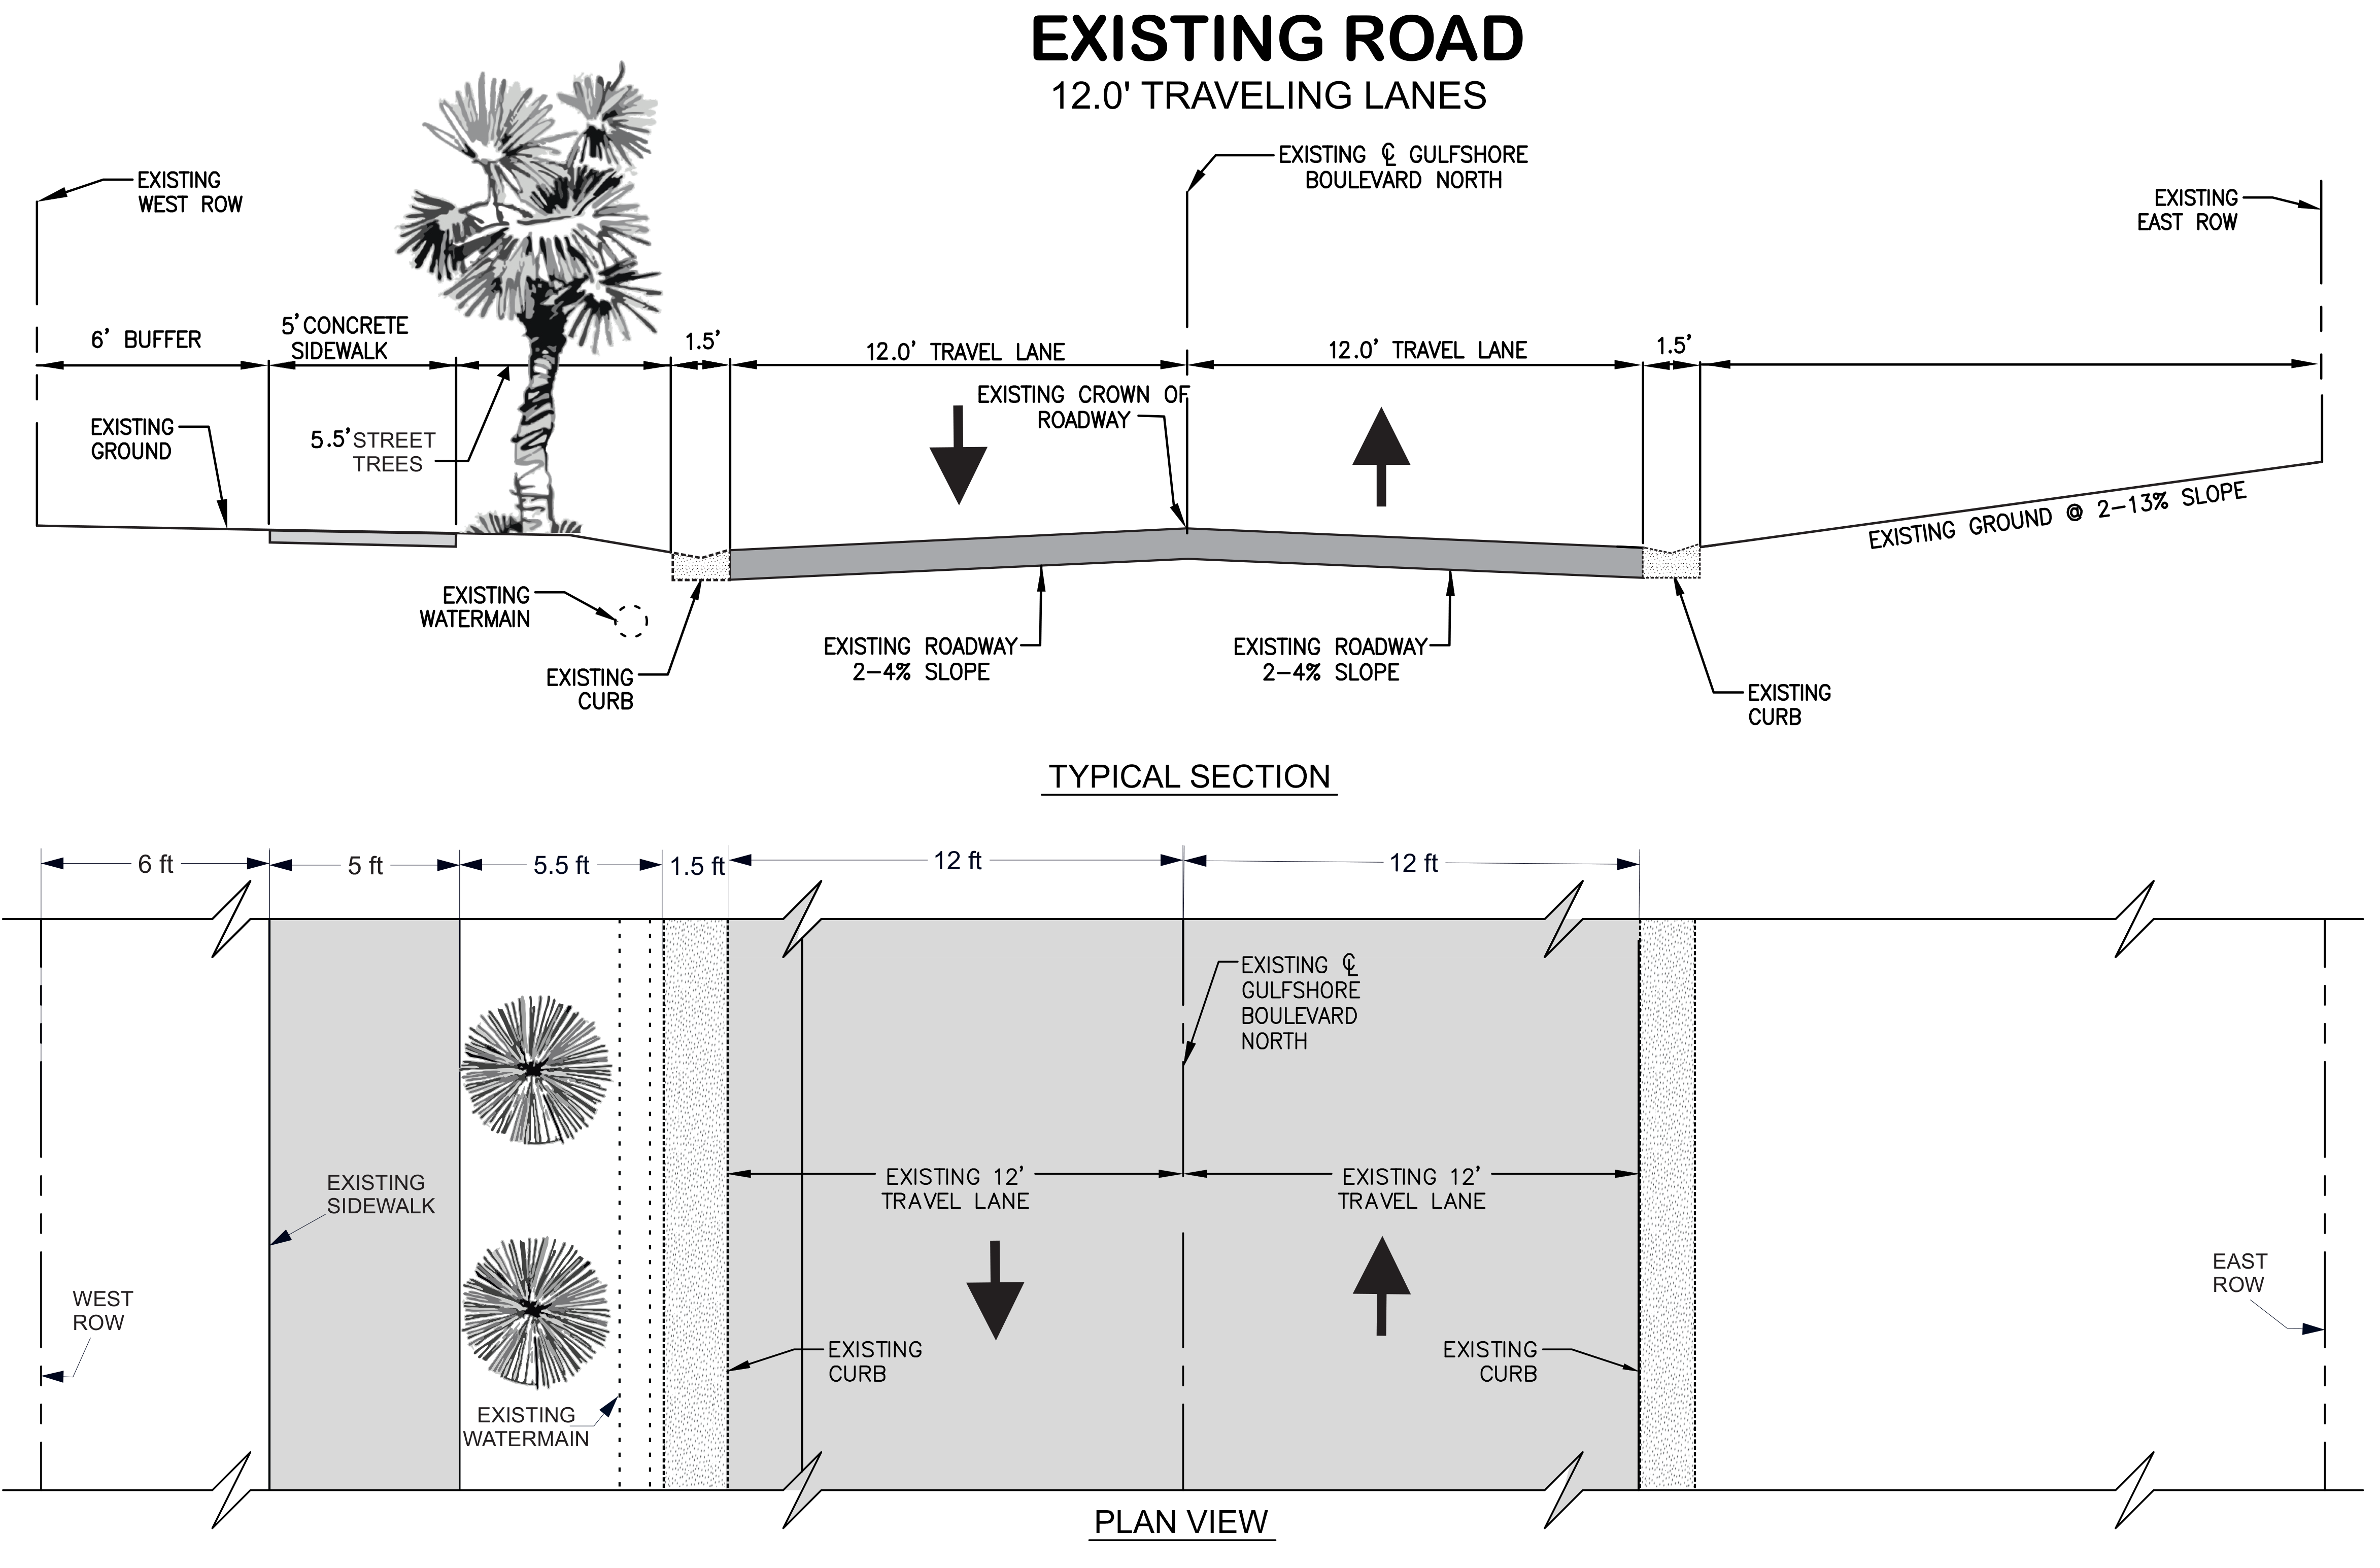 Existing cross section of Gulf Shore Boulevard